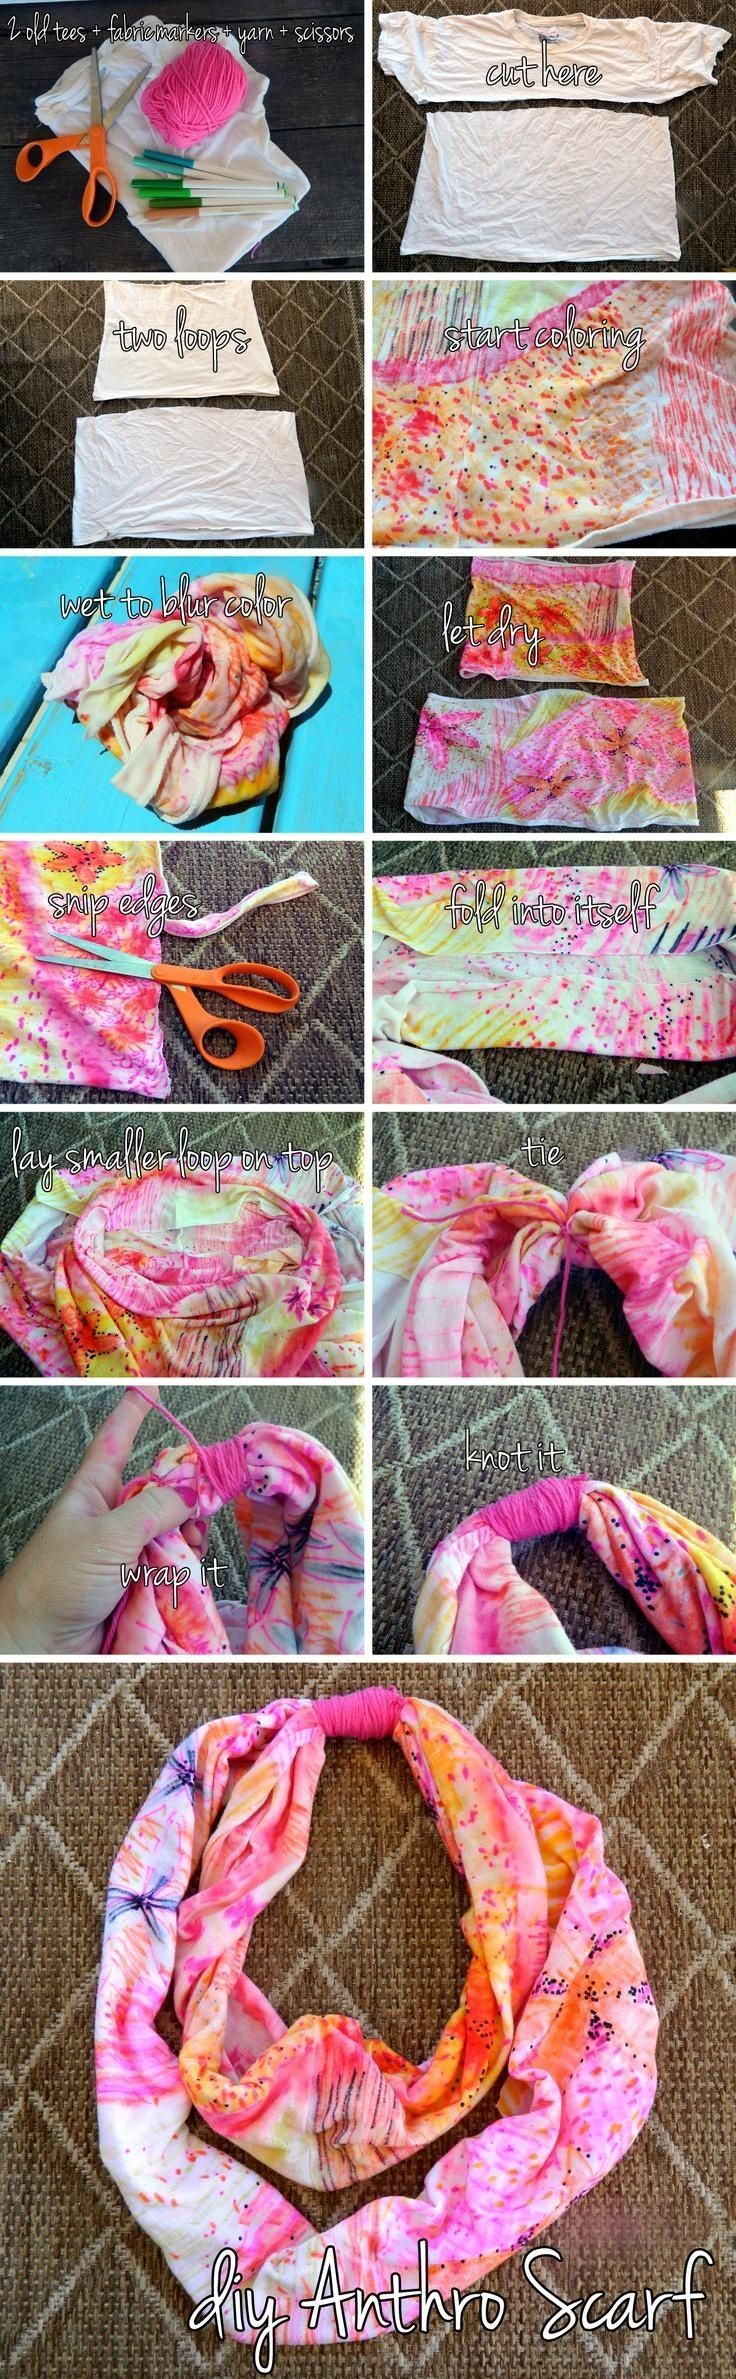 How To Tie An Infinity Scarf Pinterest Crafts